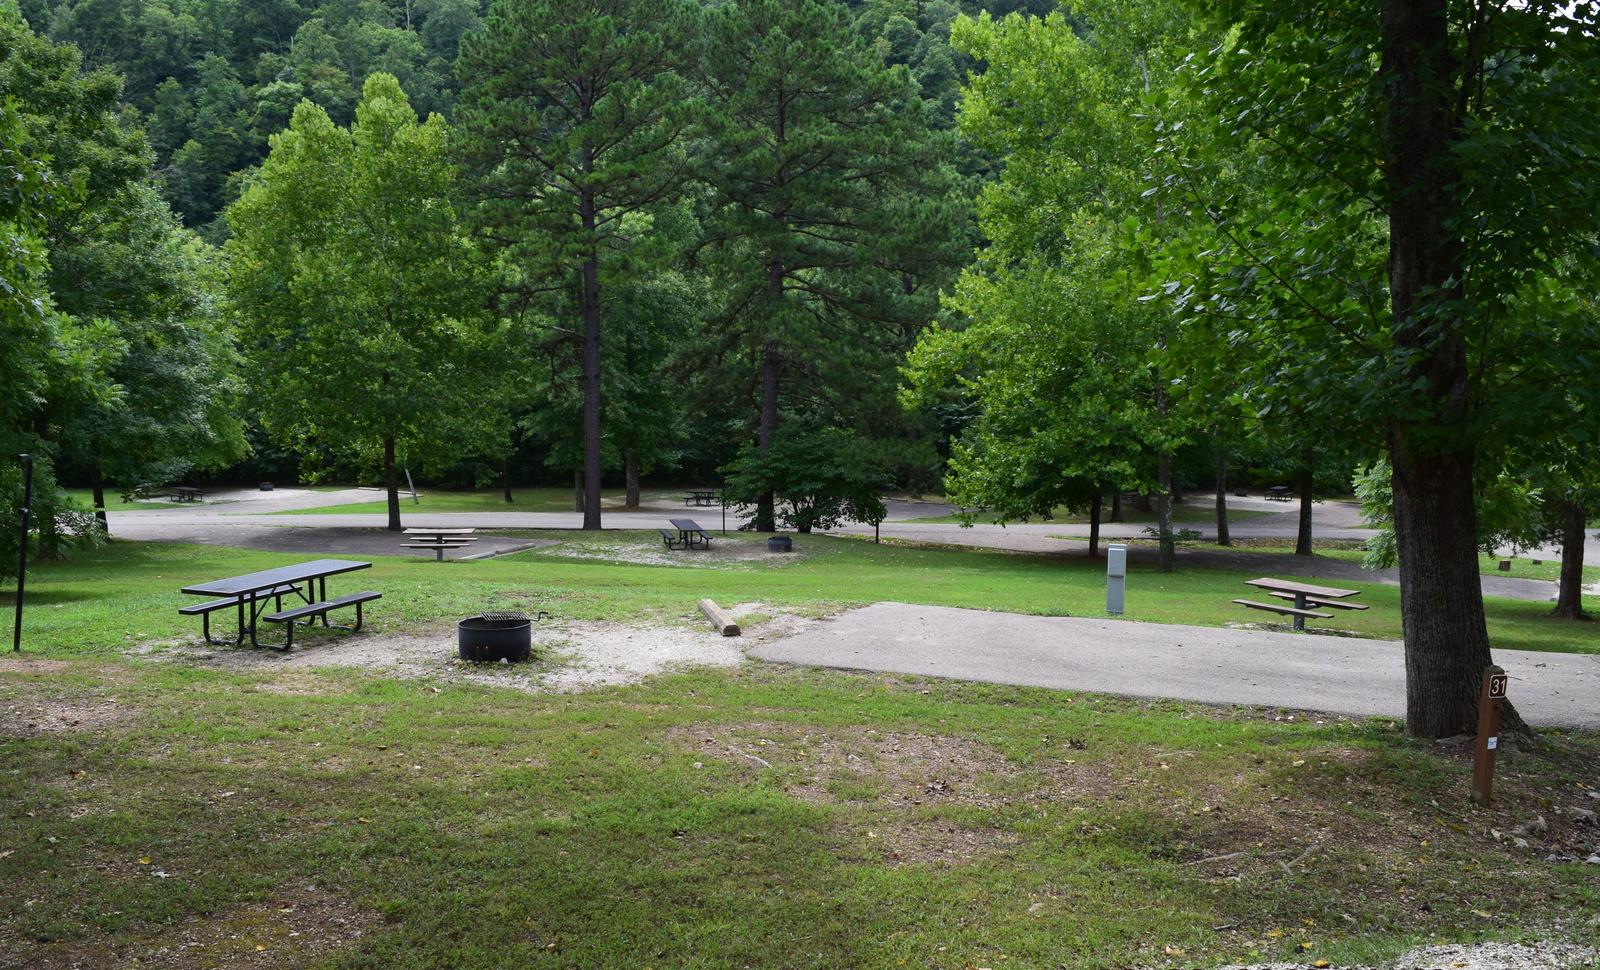 Campsite 31 showing parking spur, picnic tables, and fire ringCampsite 31